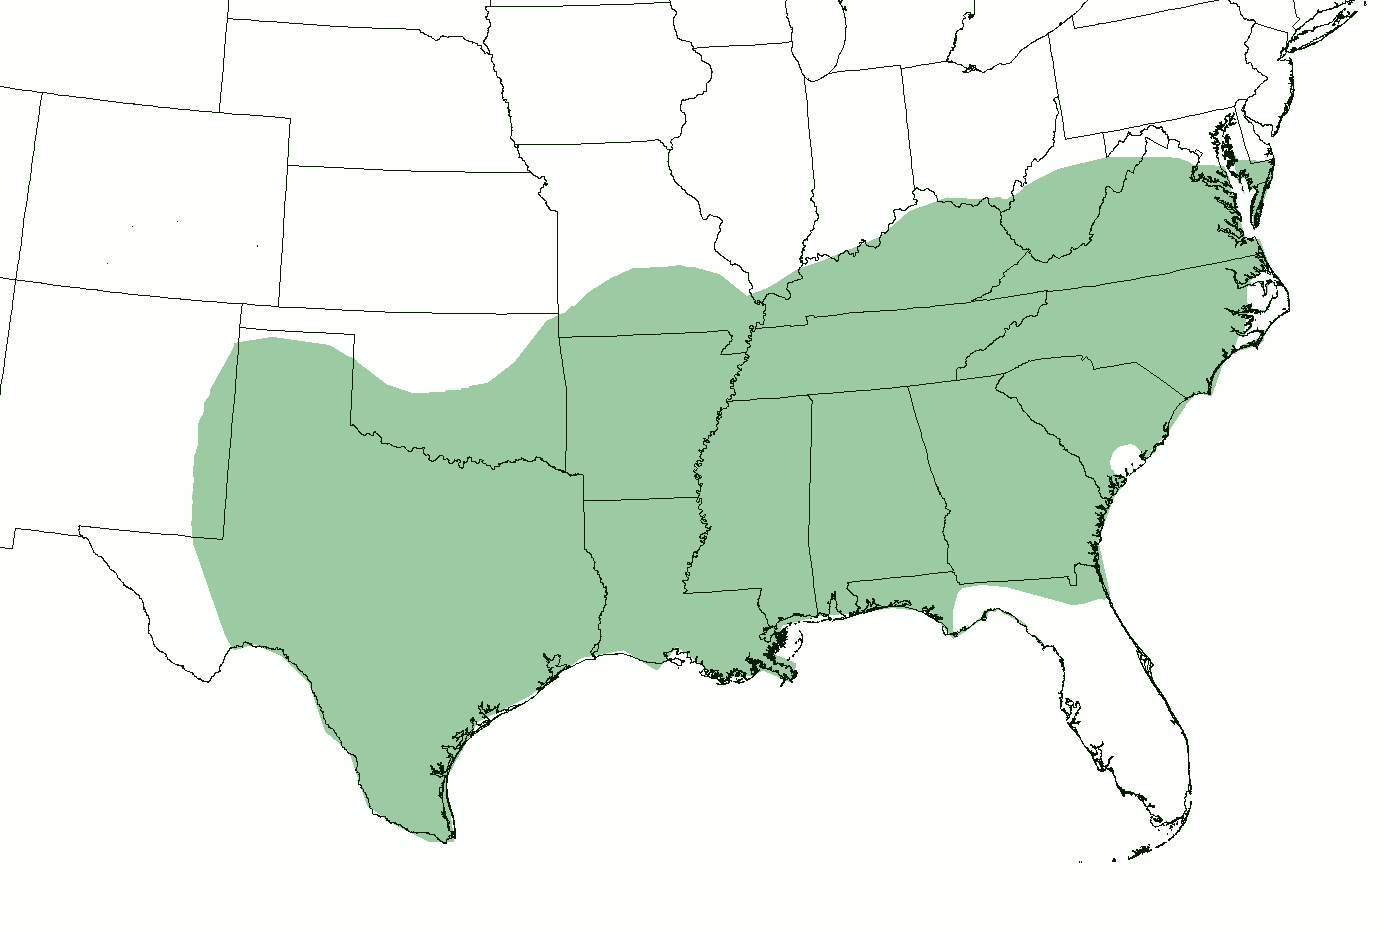 File:Southern dialect map.png - Wikimedia Commons on